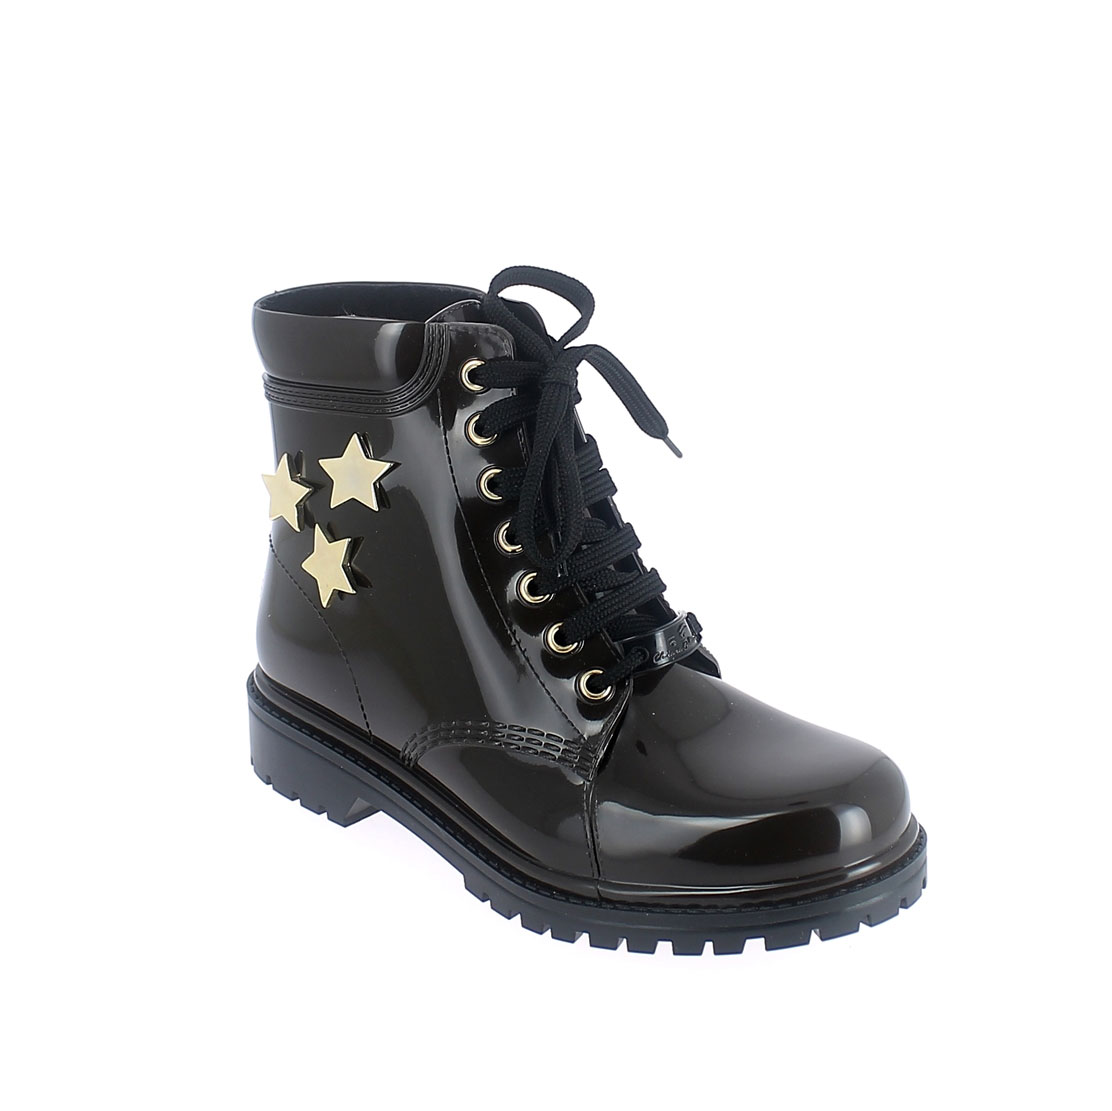 Short laced up walking boot in testa di moro pvc with gold stars